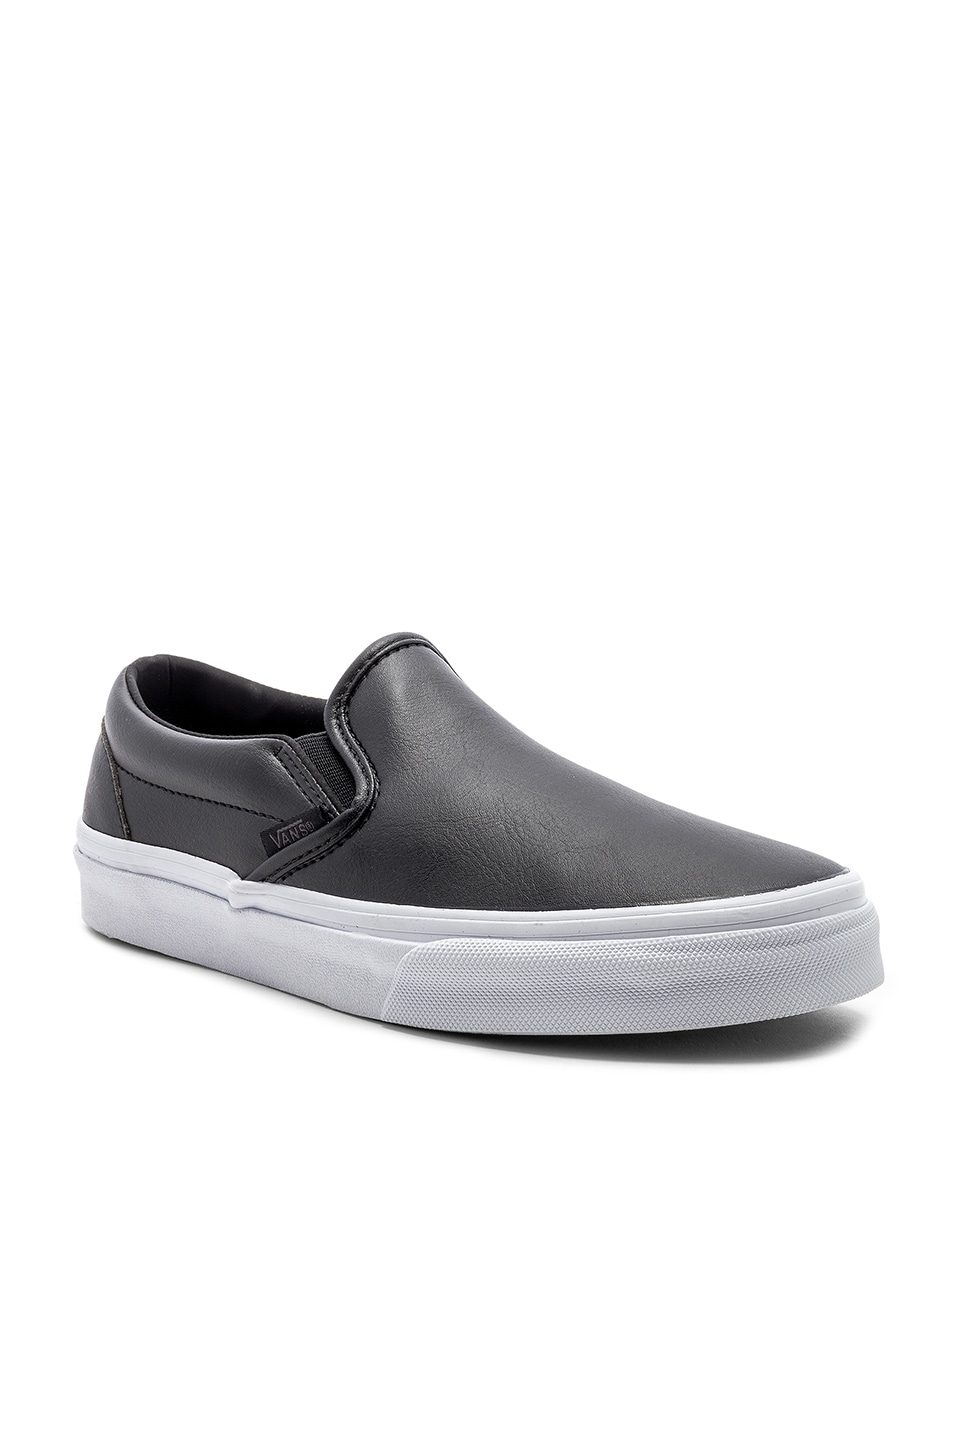 Vans SNEAKERS SLIP-ON